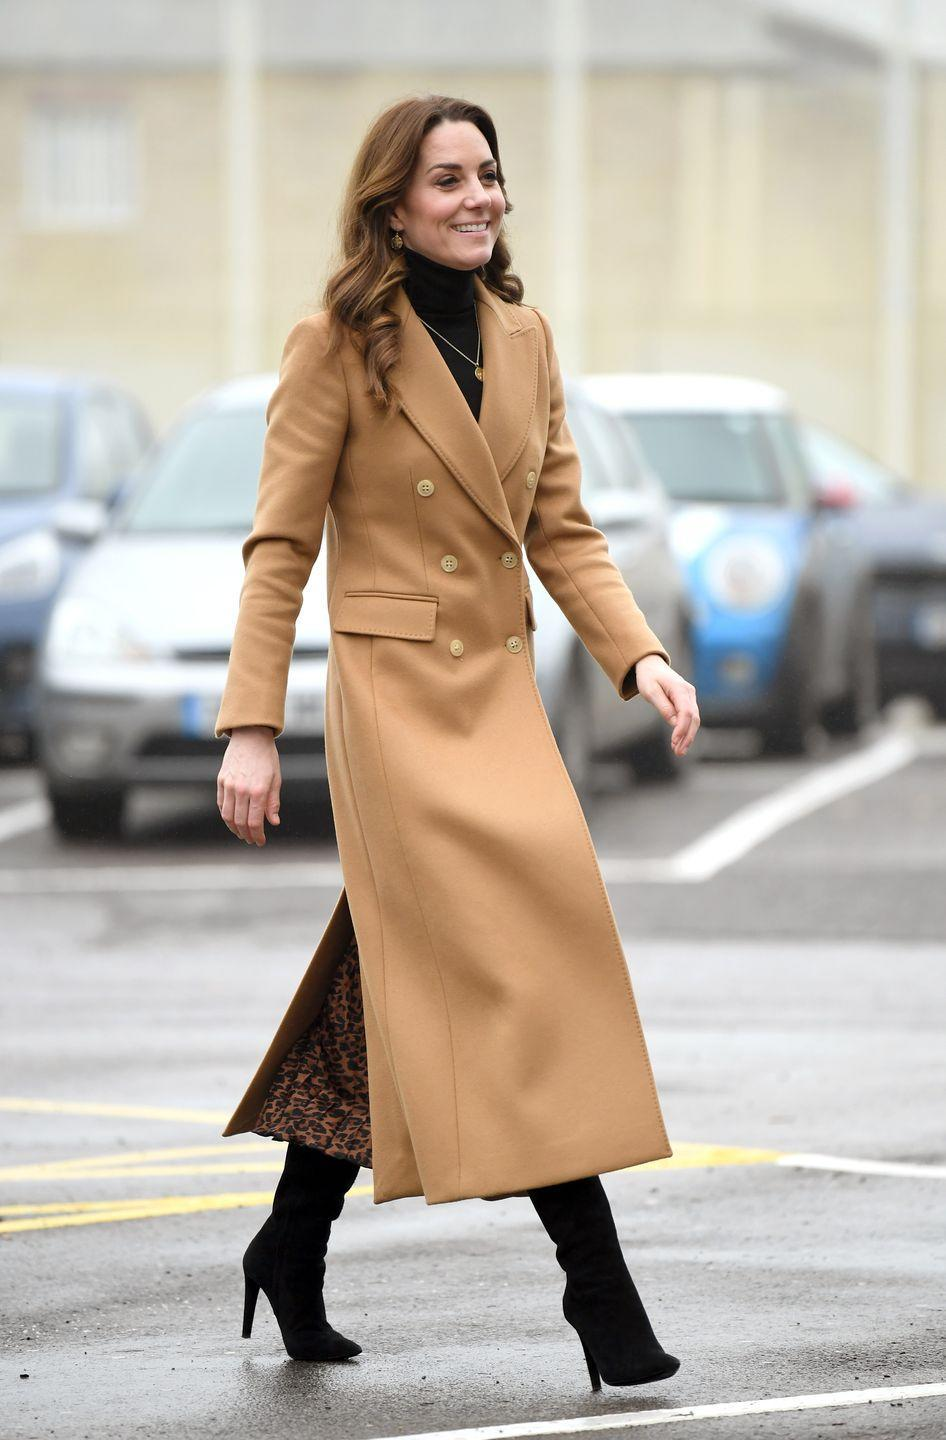 """<p>Kate Middleton chose a camel coat, heeled boots, skirt, and turtleneck for a visit to Wales. The Duchess was there <a href=""""https://www.townandcountrymag.com/society/tradition/a30613232/kate-middleton-survey-uk-tour-announcement/"""" rel=""""nofollow noopener"""" target=""""_blank"""" data-ylk=""""slk:to promote her new survey about early childhood development"""" class=""""link rapid-noclick-resp"""">to promote her new survey about early childhood development</a>.</p>"""